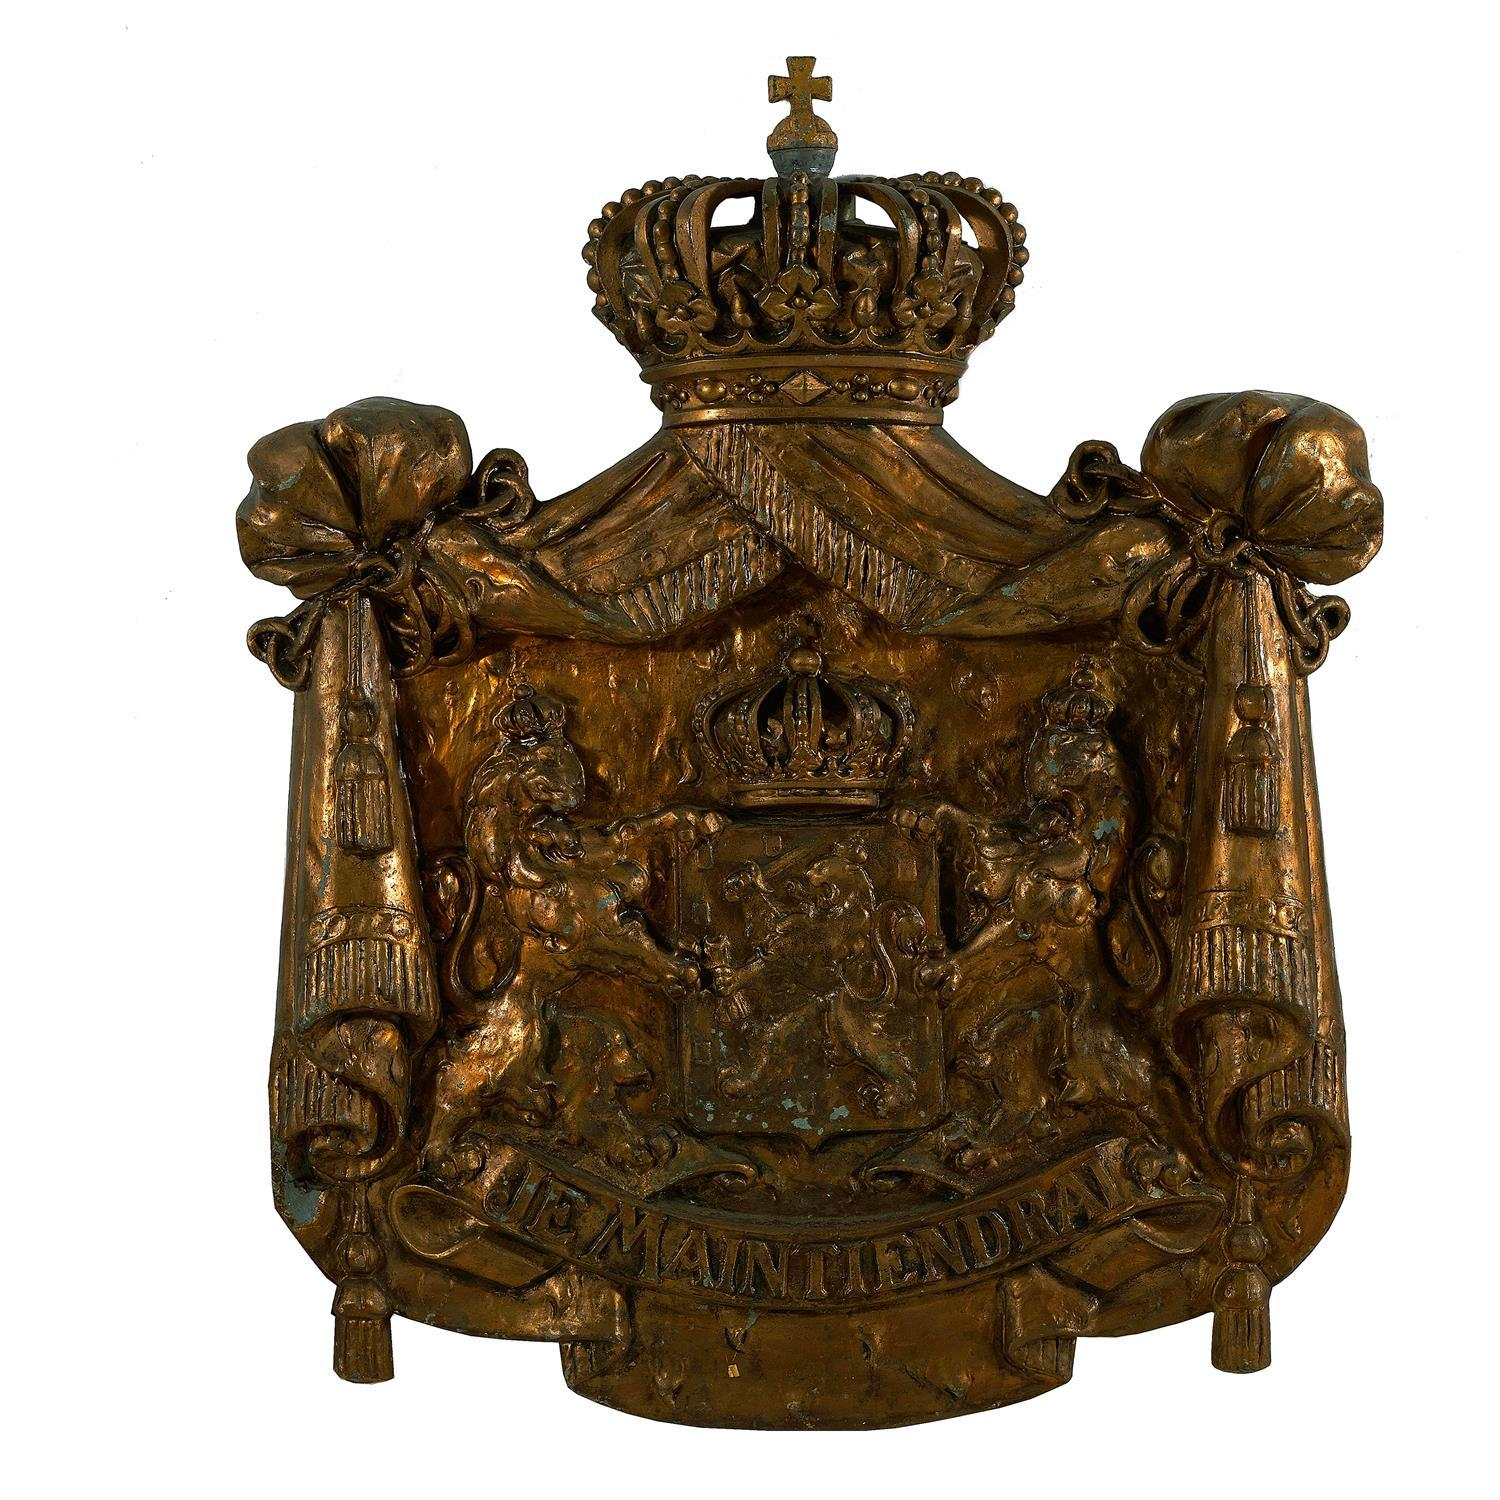 Royal arms of the Kingdom of the Netherlands